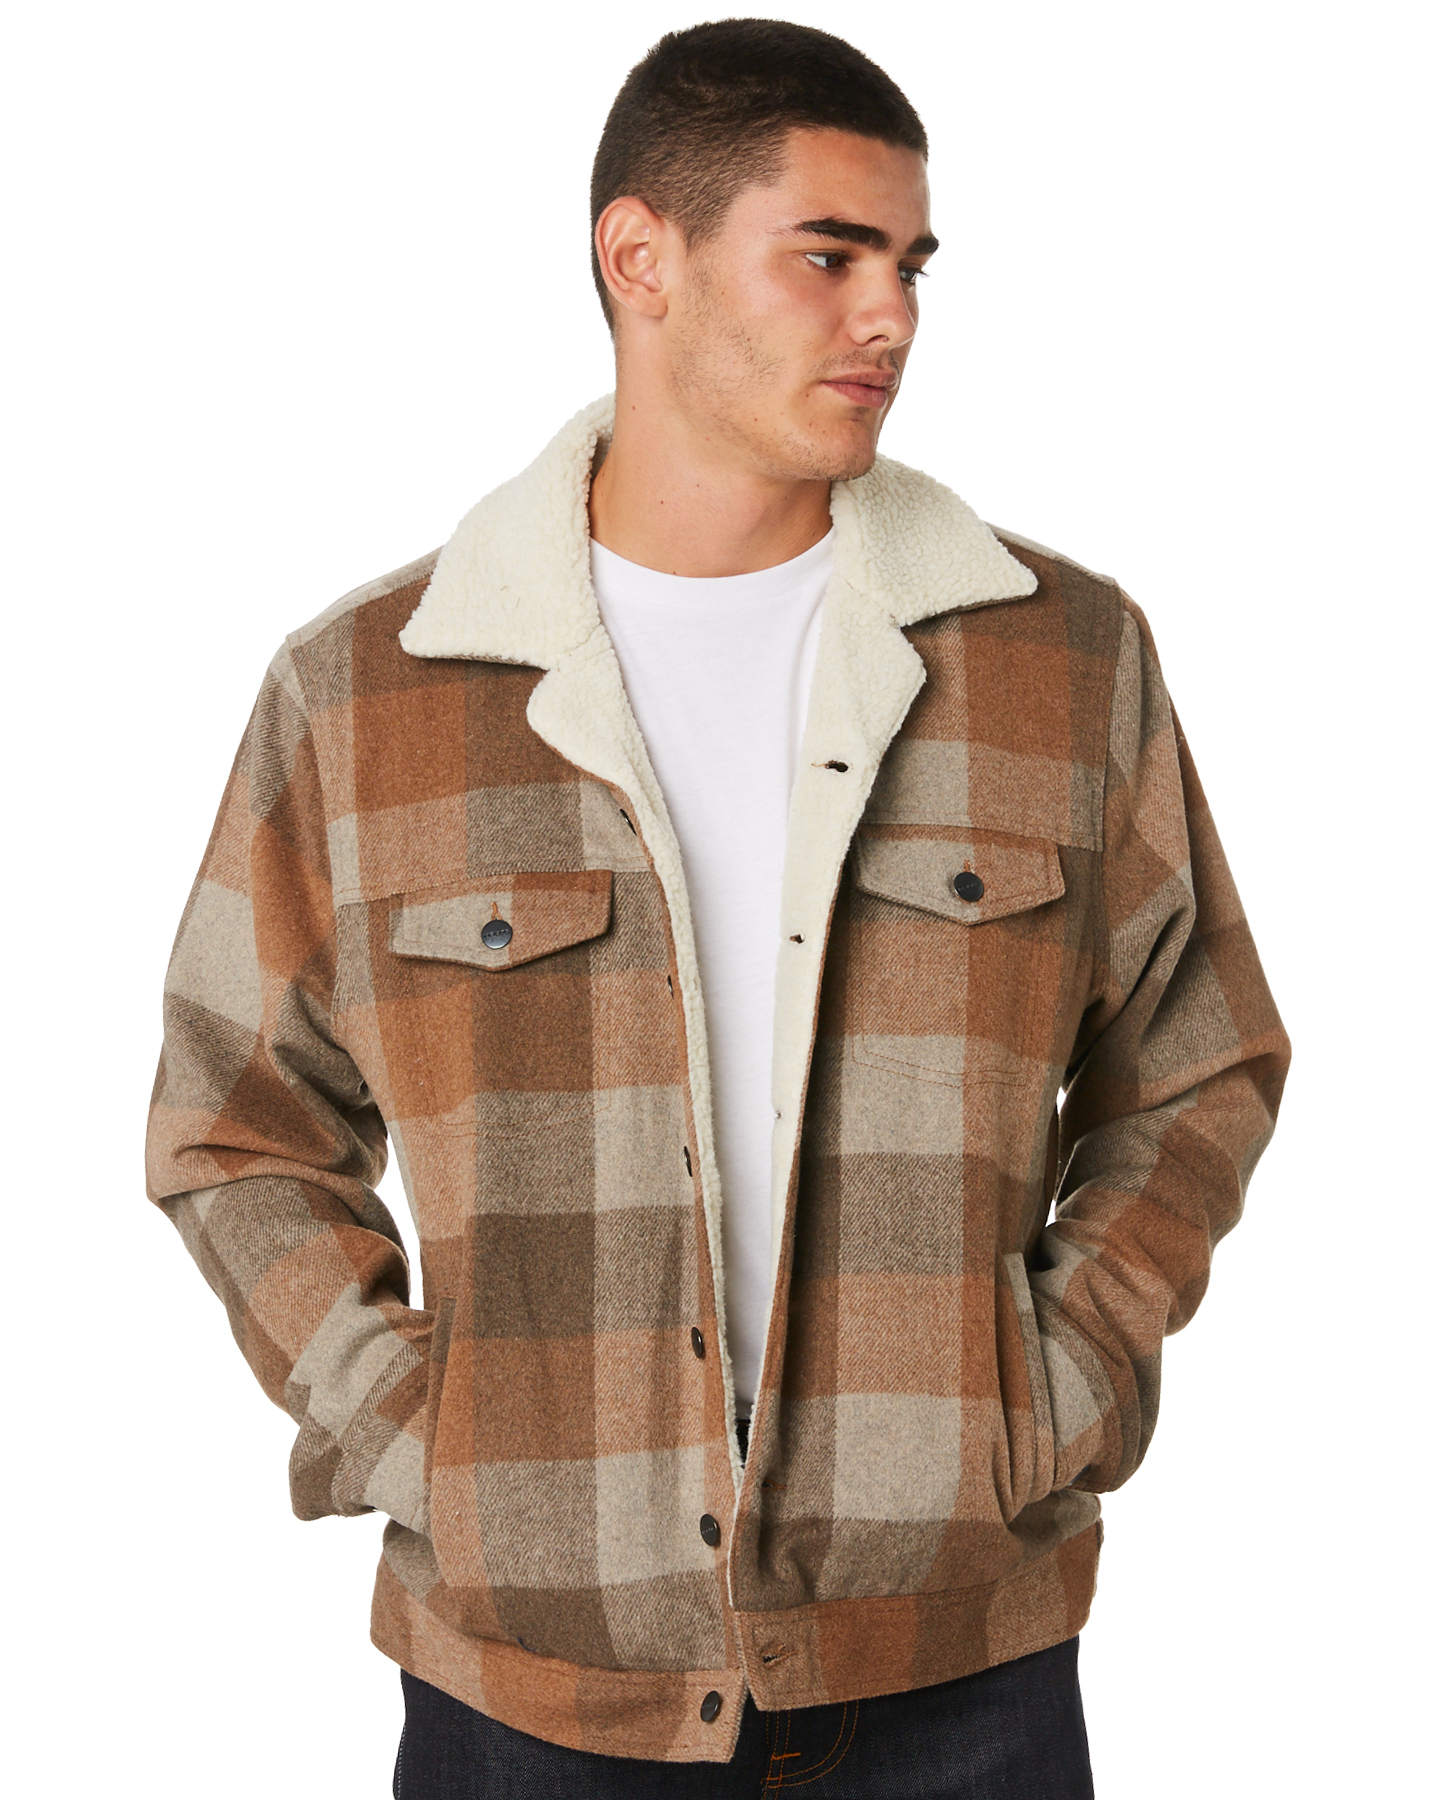 431922a0f9 Insight Lumber City Mens Jacket Brown